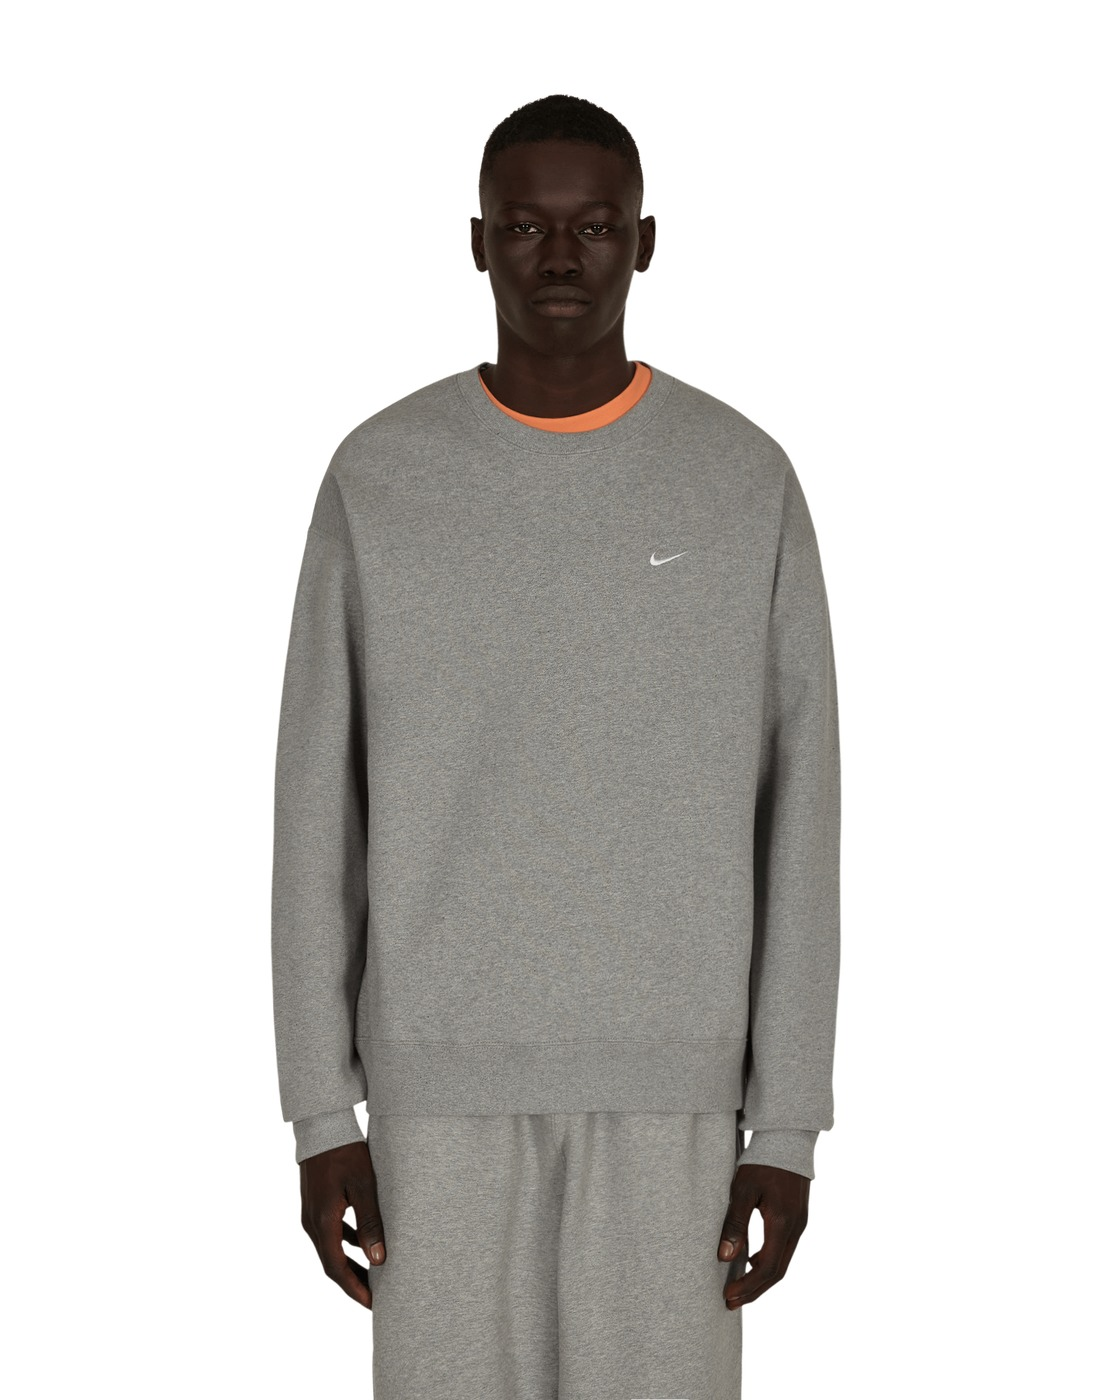 Photo: Nike Special Project Solo Swoosh Crewneck Sweatshirt Dk Grey Heather/White